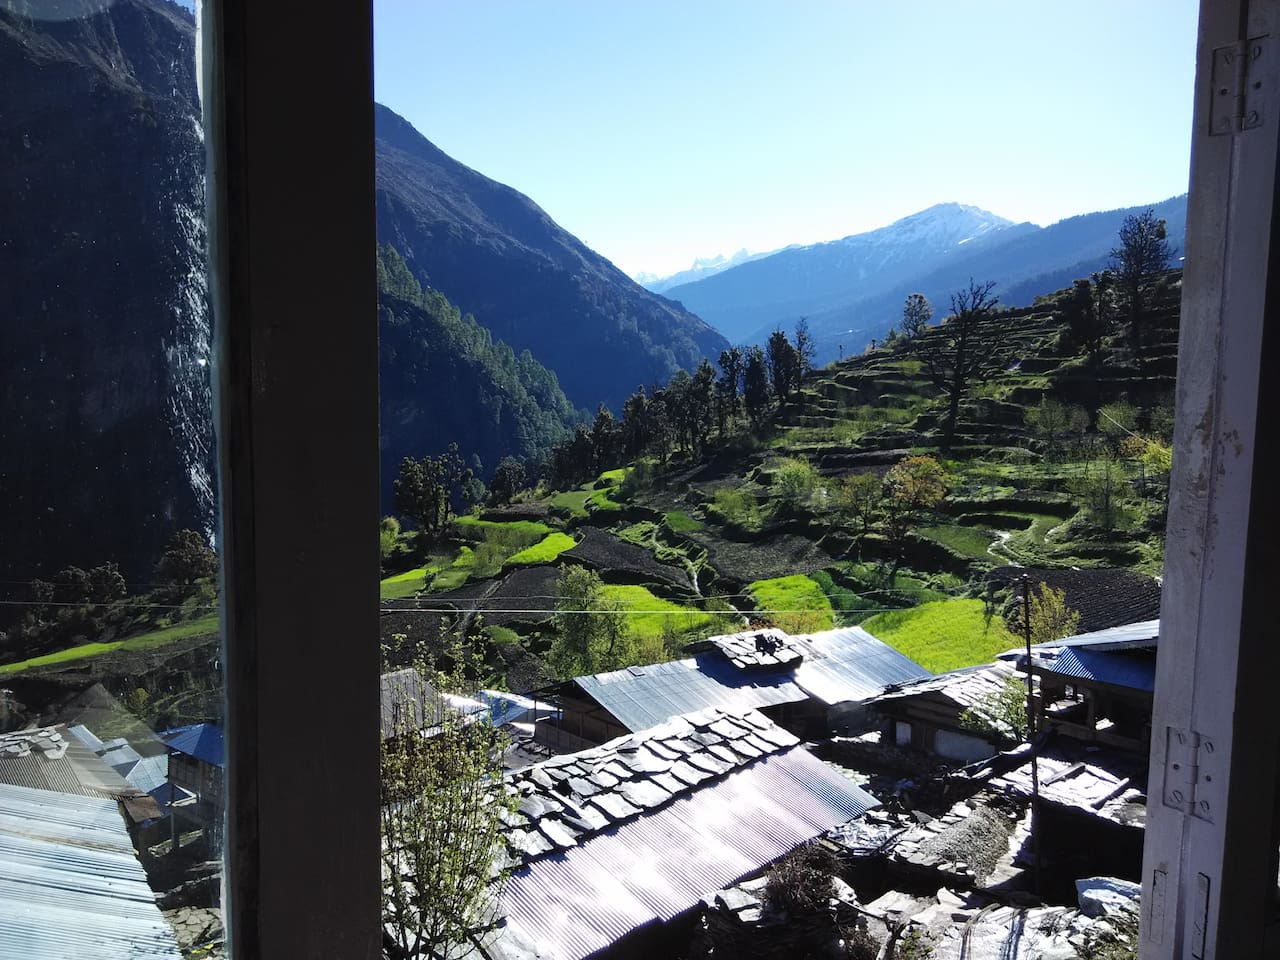 view from window in veranda of the Homestay